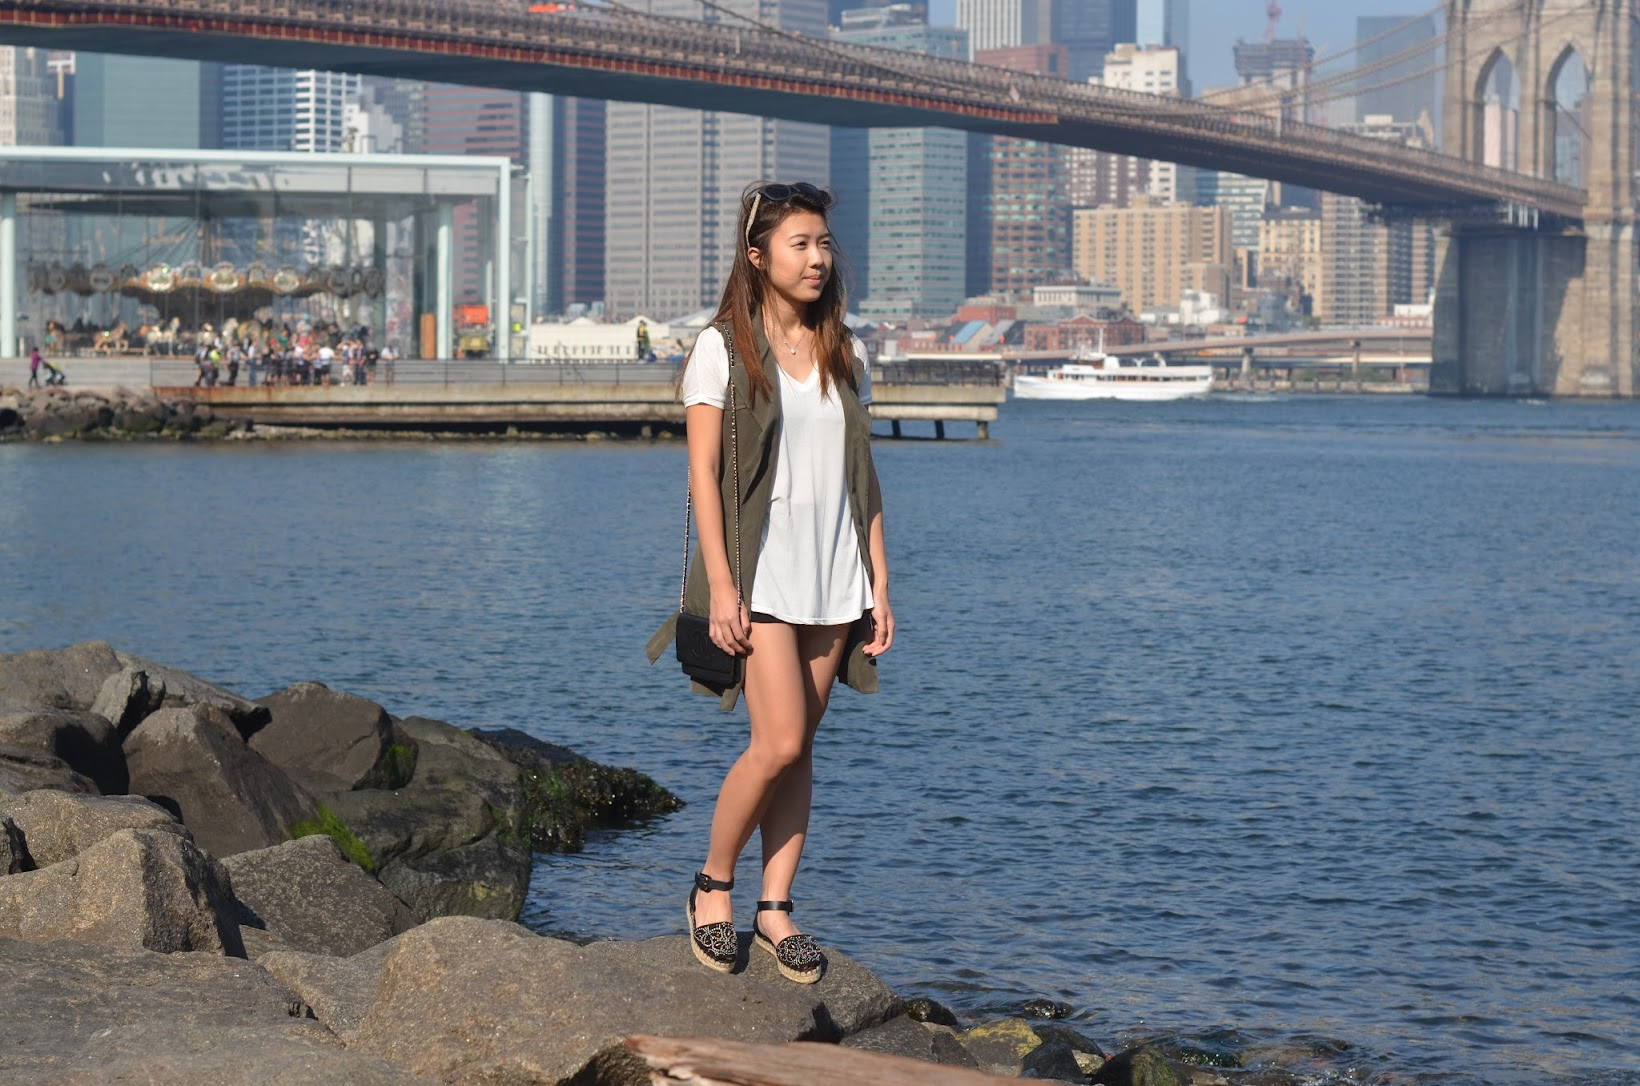 explicit affairs dumbo brooklyn outfit valentino espadrilles